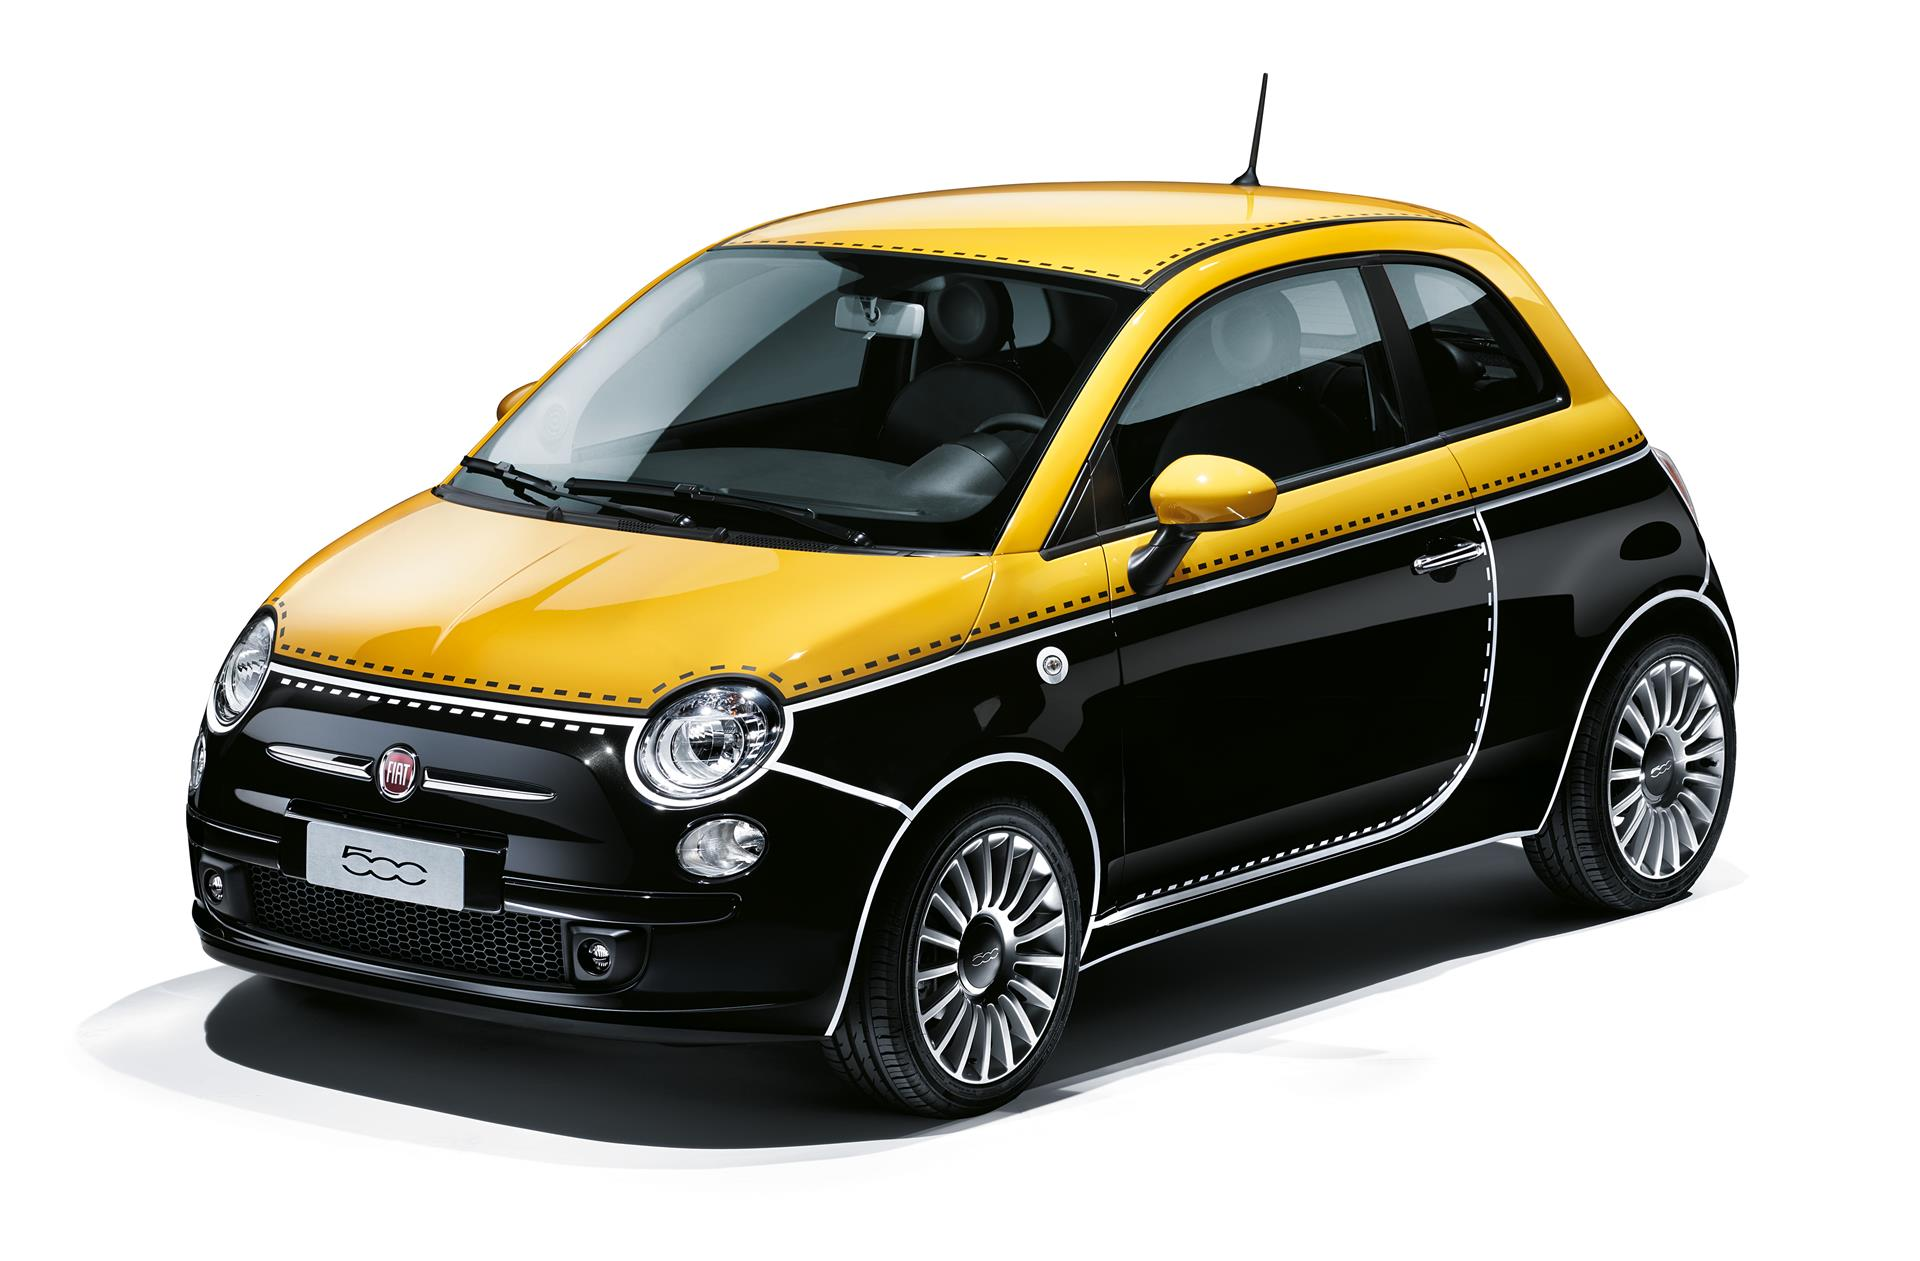 2015 fiat 500 couture technical specifications and data. Black Bedroom Furniture Sets. Home Design Ideas